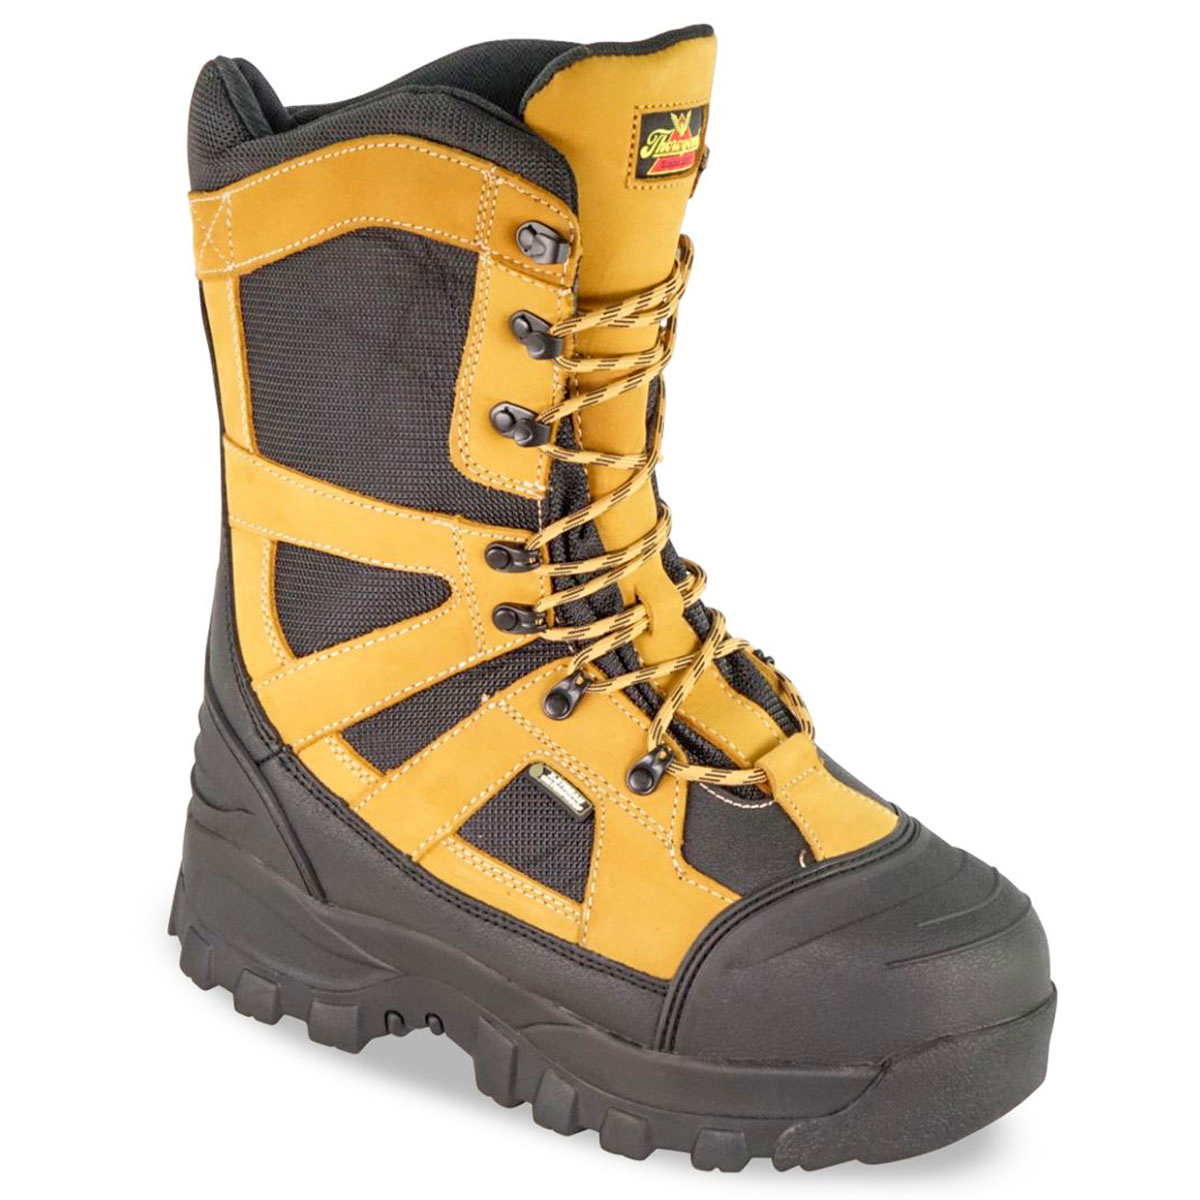 "f1621e2819f Details about Thorogood 2440 Cold Weather Series Endeavor Extreme 12""  Insulated Work Boot"